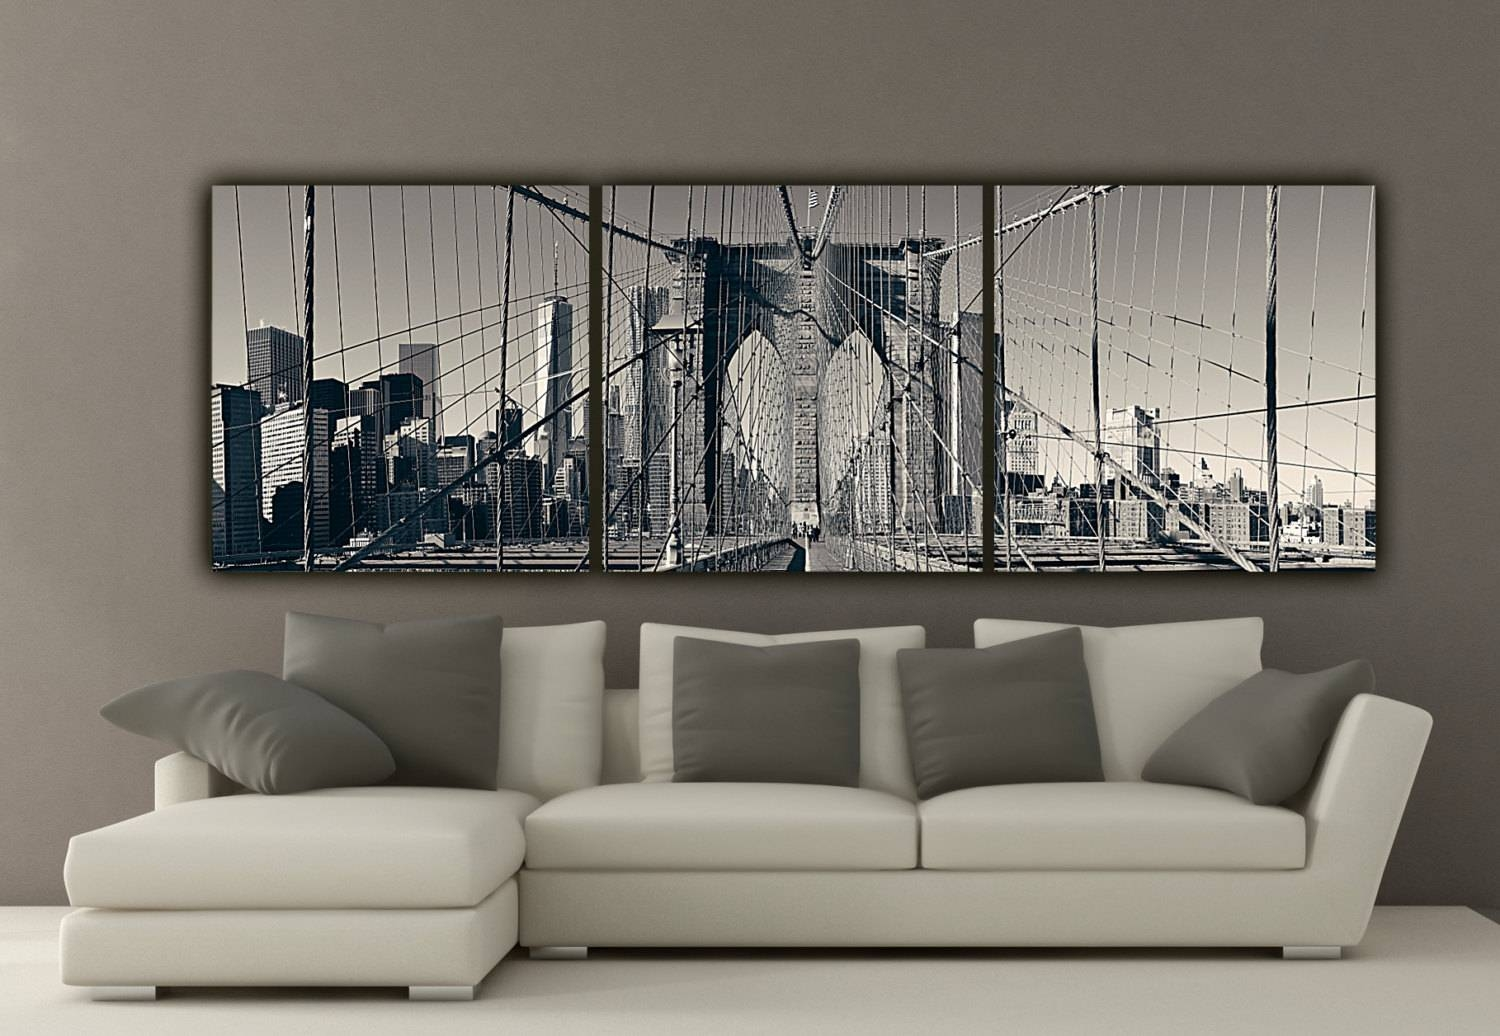 New York Brooklyn Bridge Canvas Wall Art Black And White New With Regard To Current New York Skyline Canvas Black And White Wall Art (View 5 of 20)